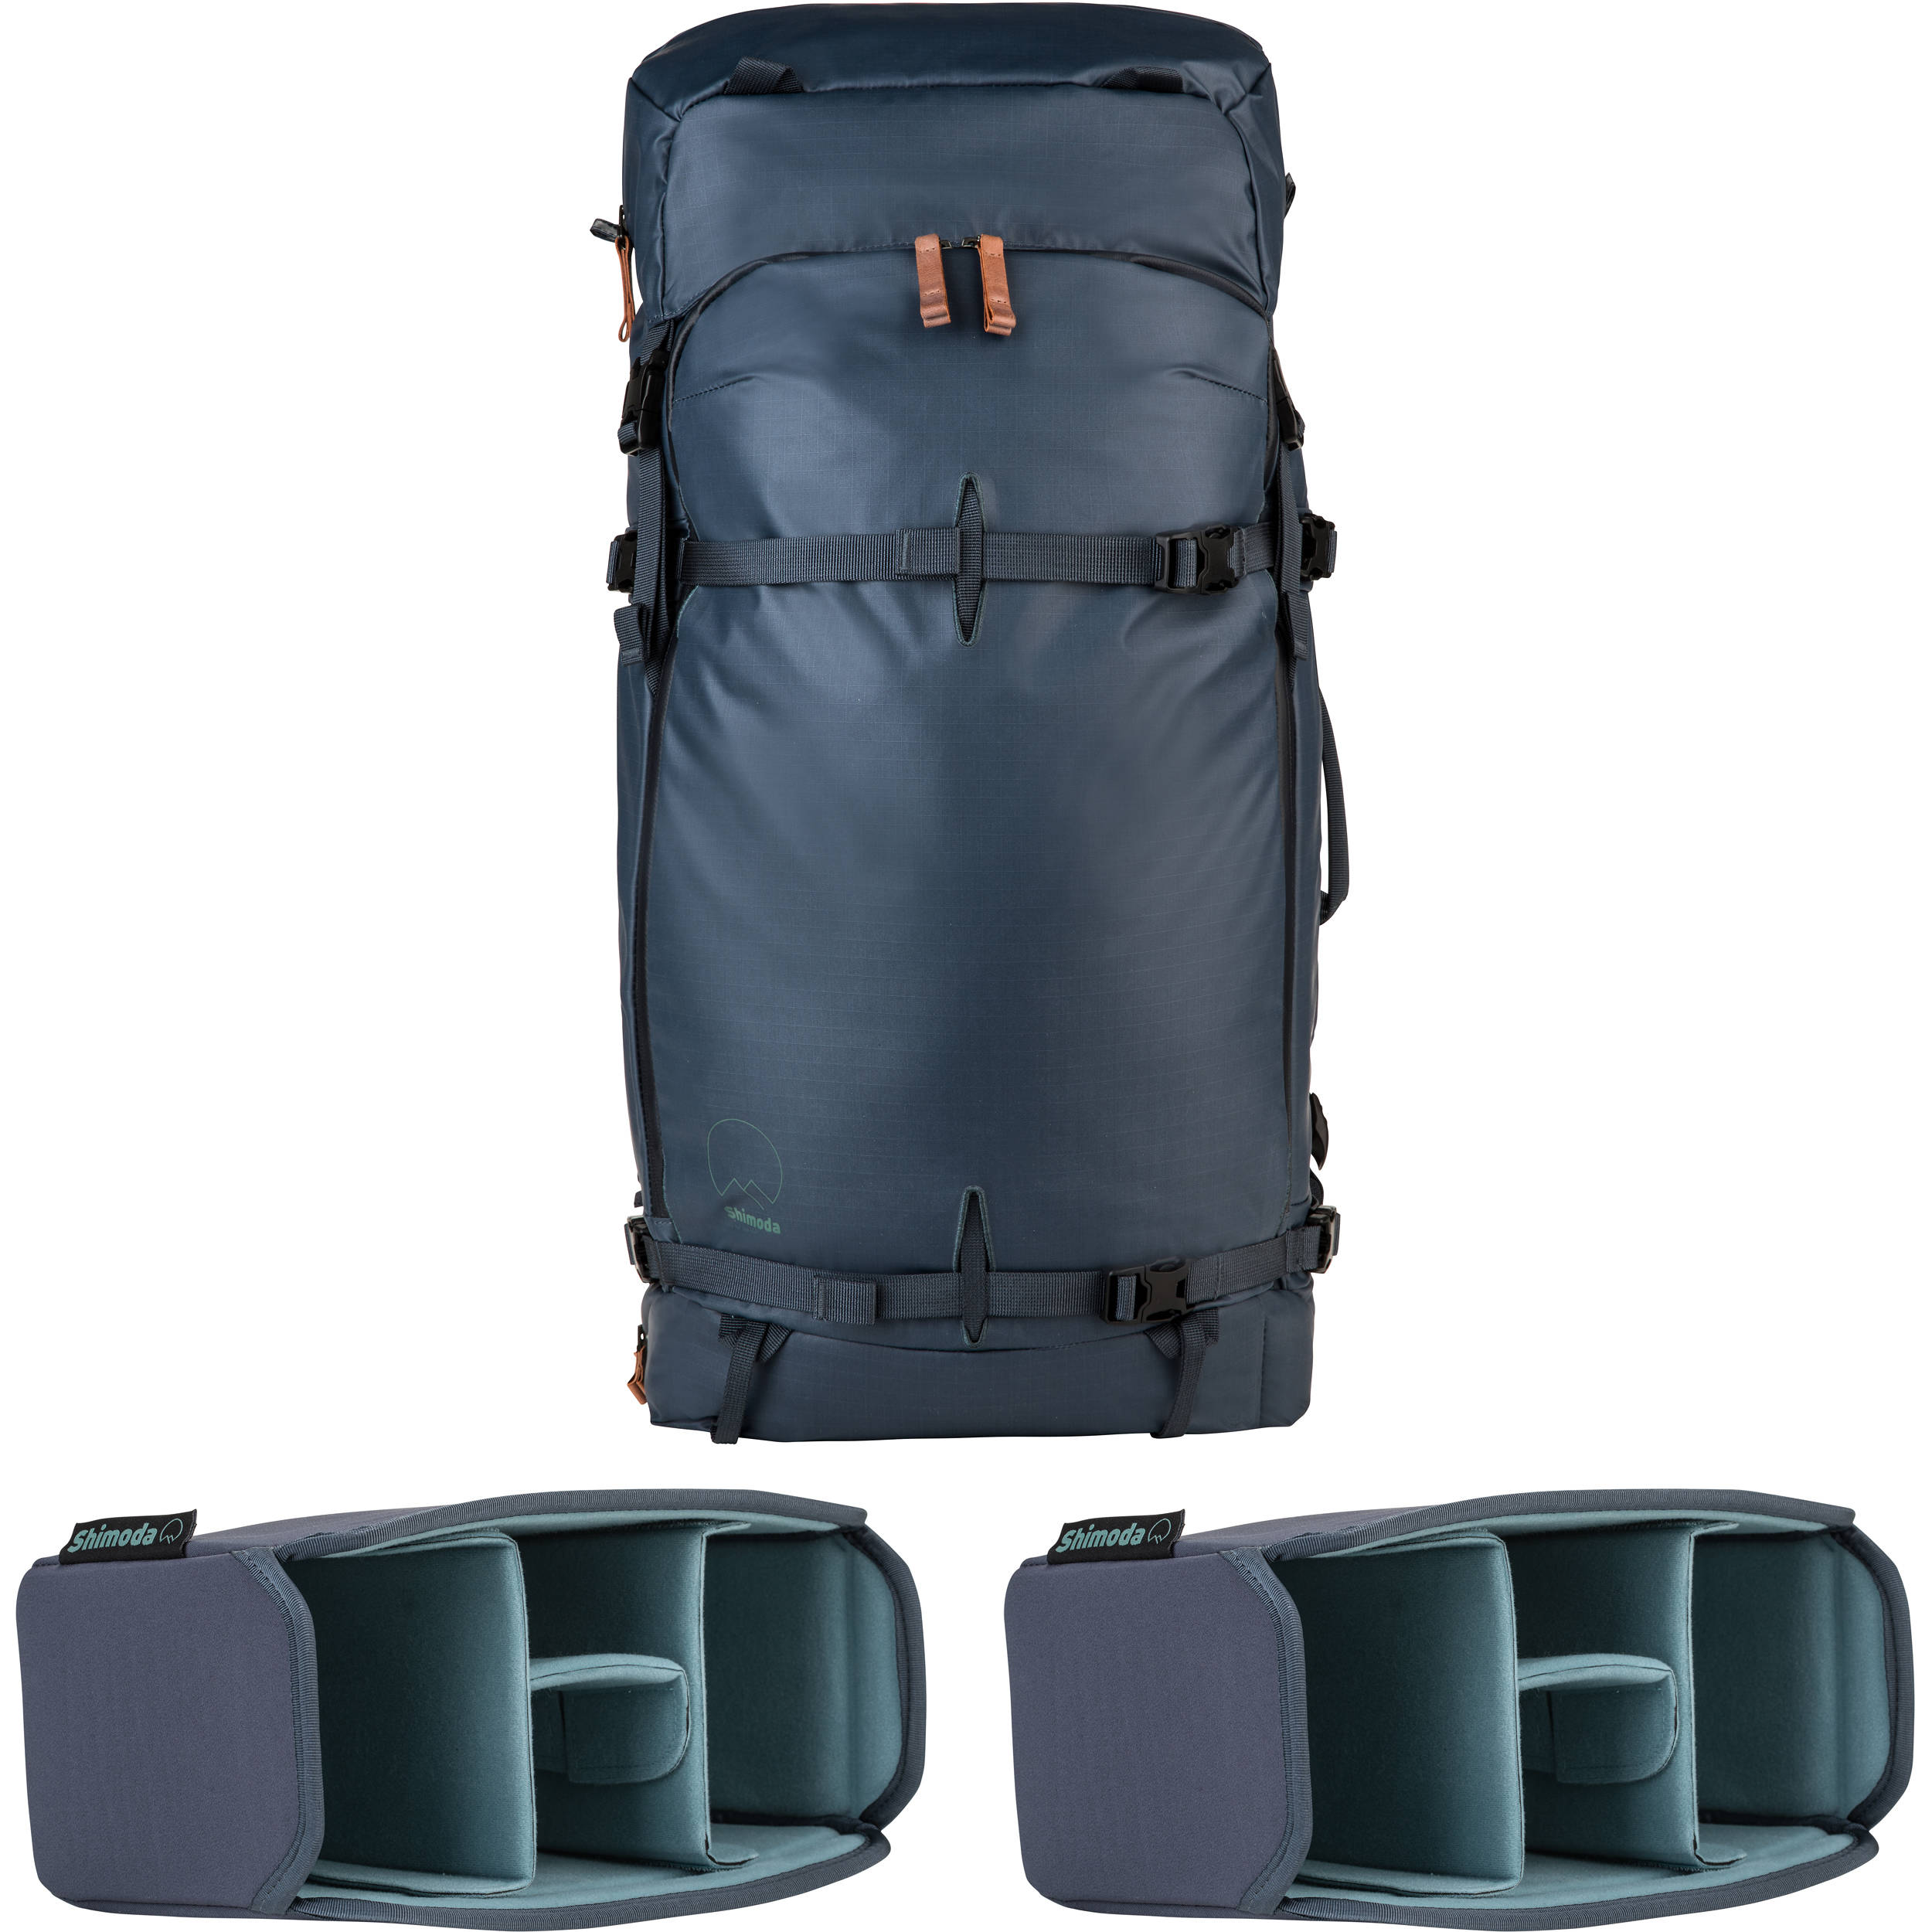 Shimoda Designs Explore 60 Backpack Starter Kit With 2 520 013 Tumi Hanger Small Core Units Blue Nights